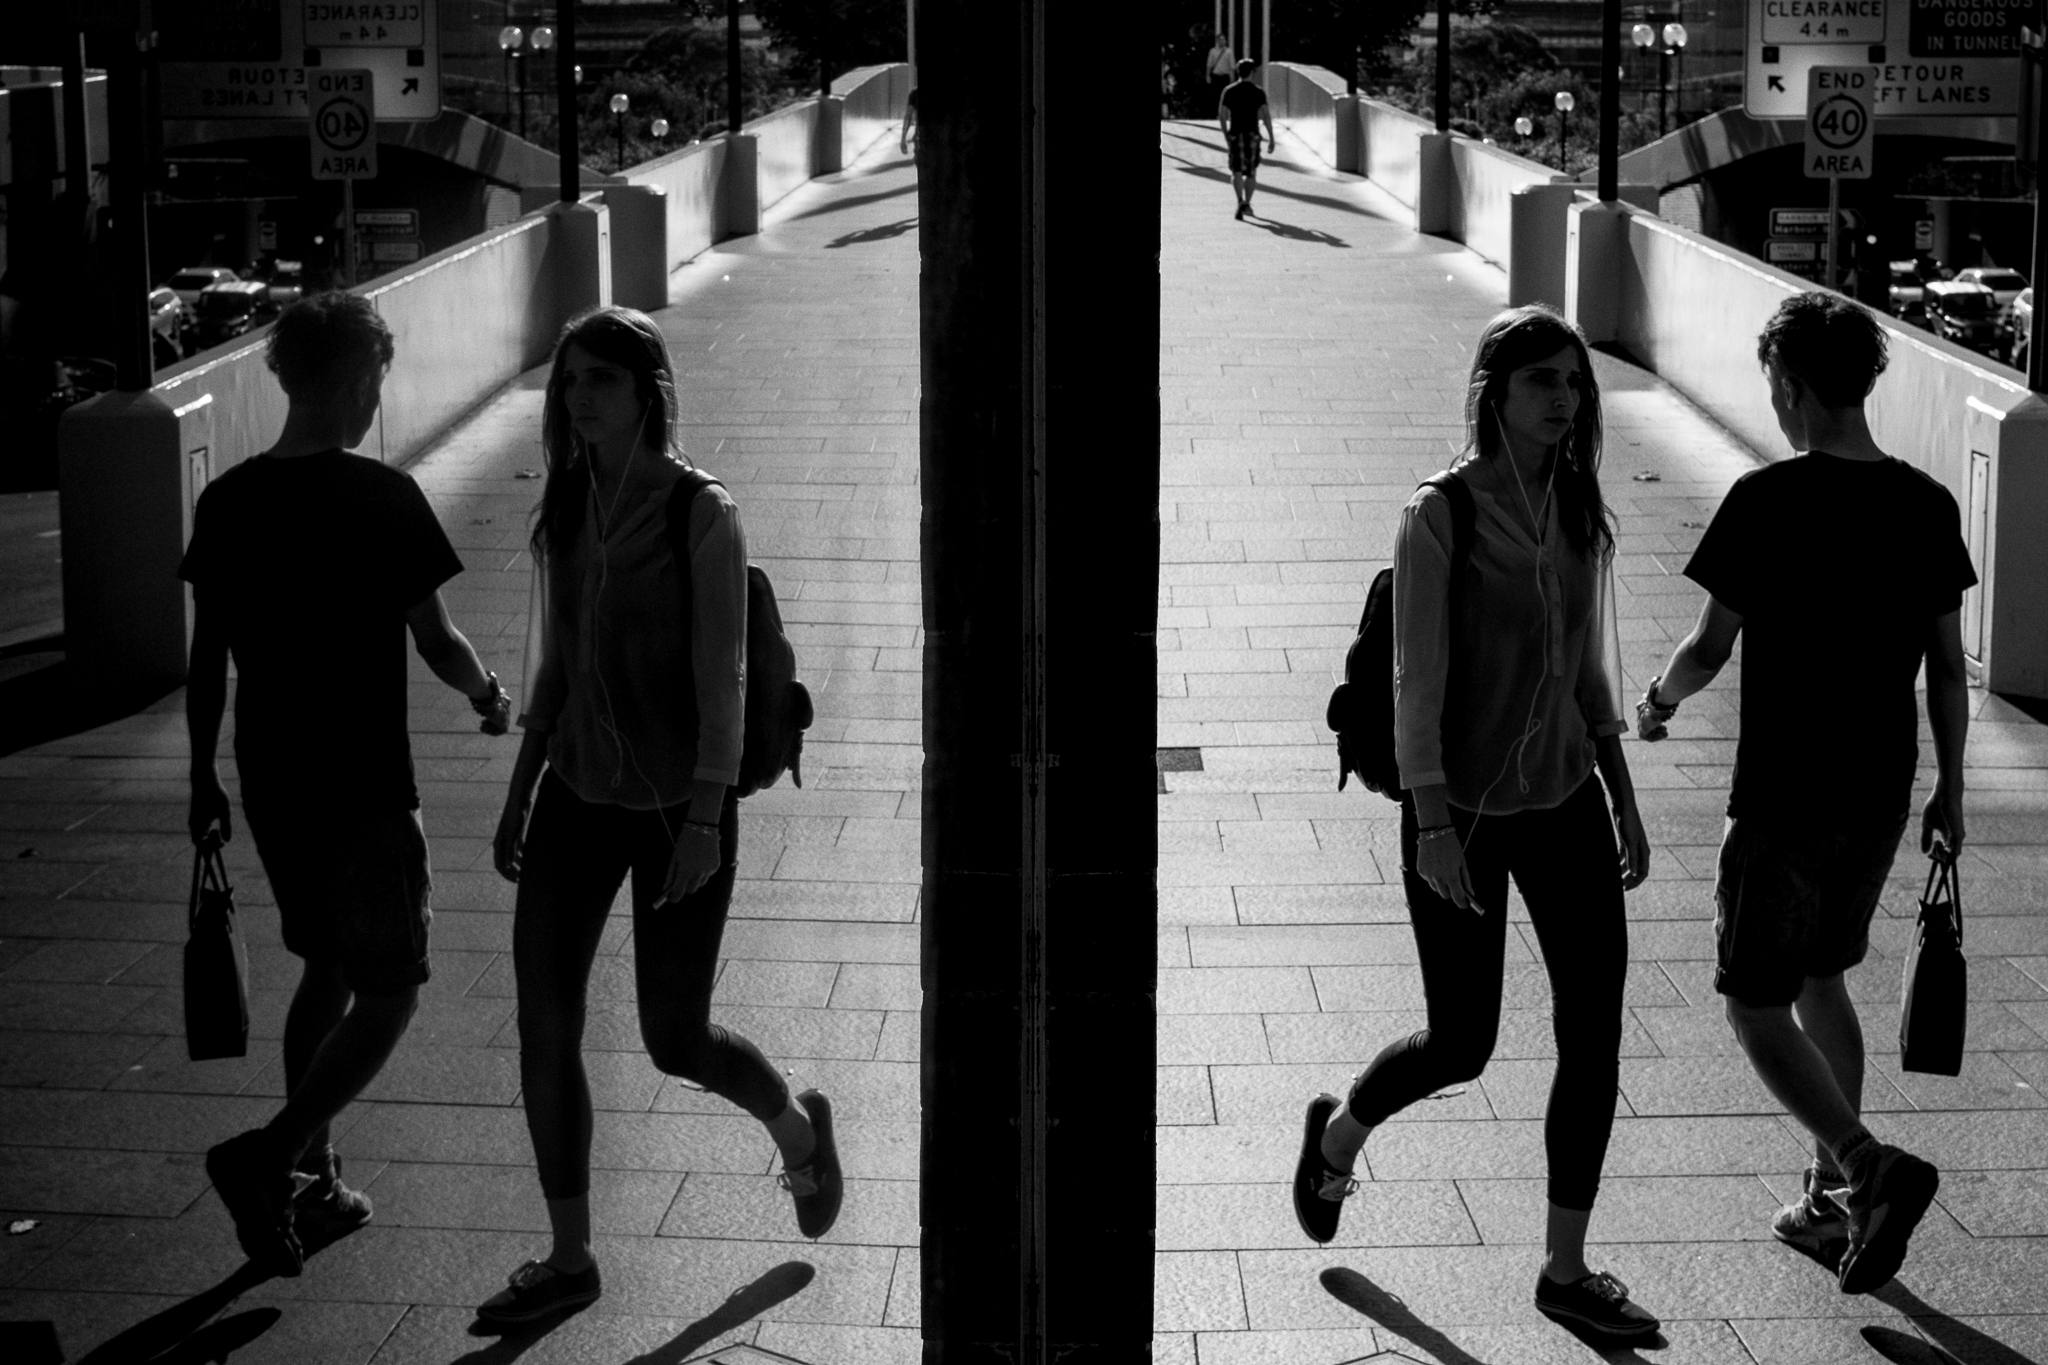 Search out reflections for symmetry in shop windows | Haymarket, 2015